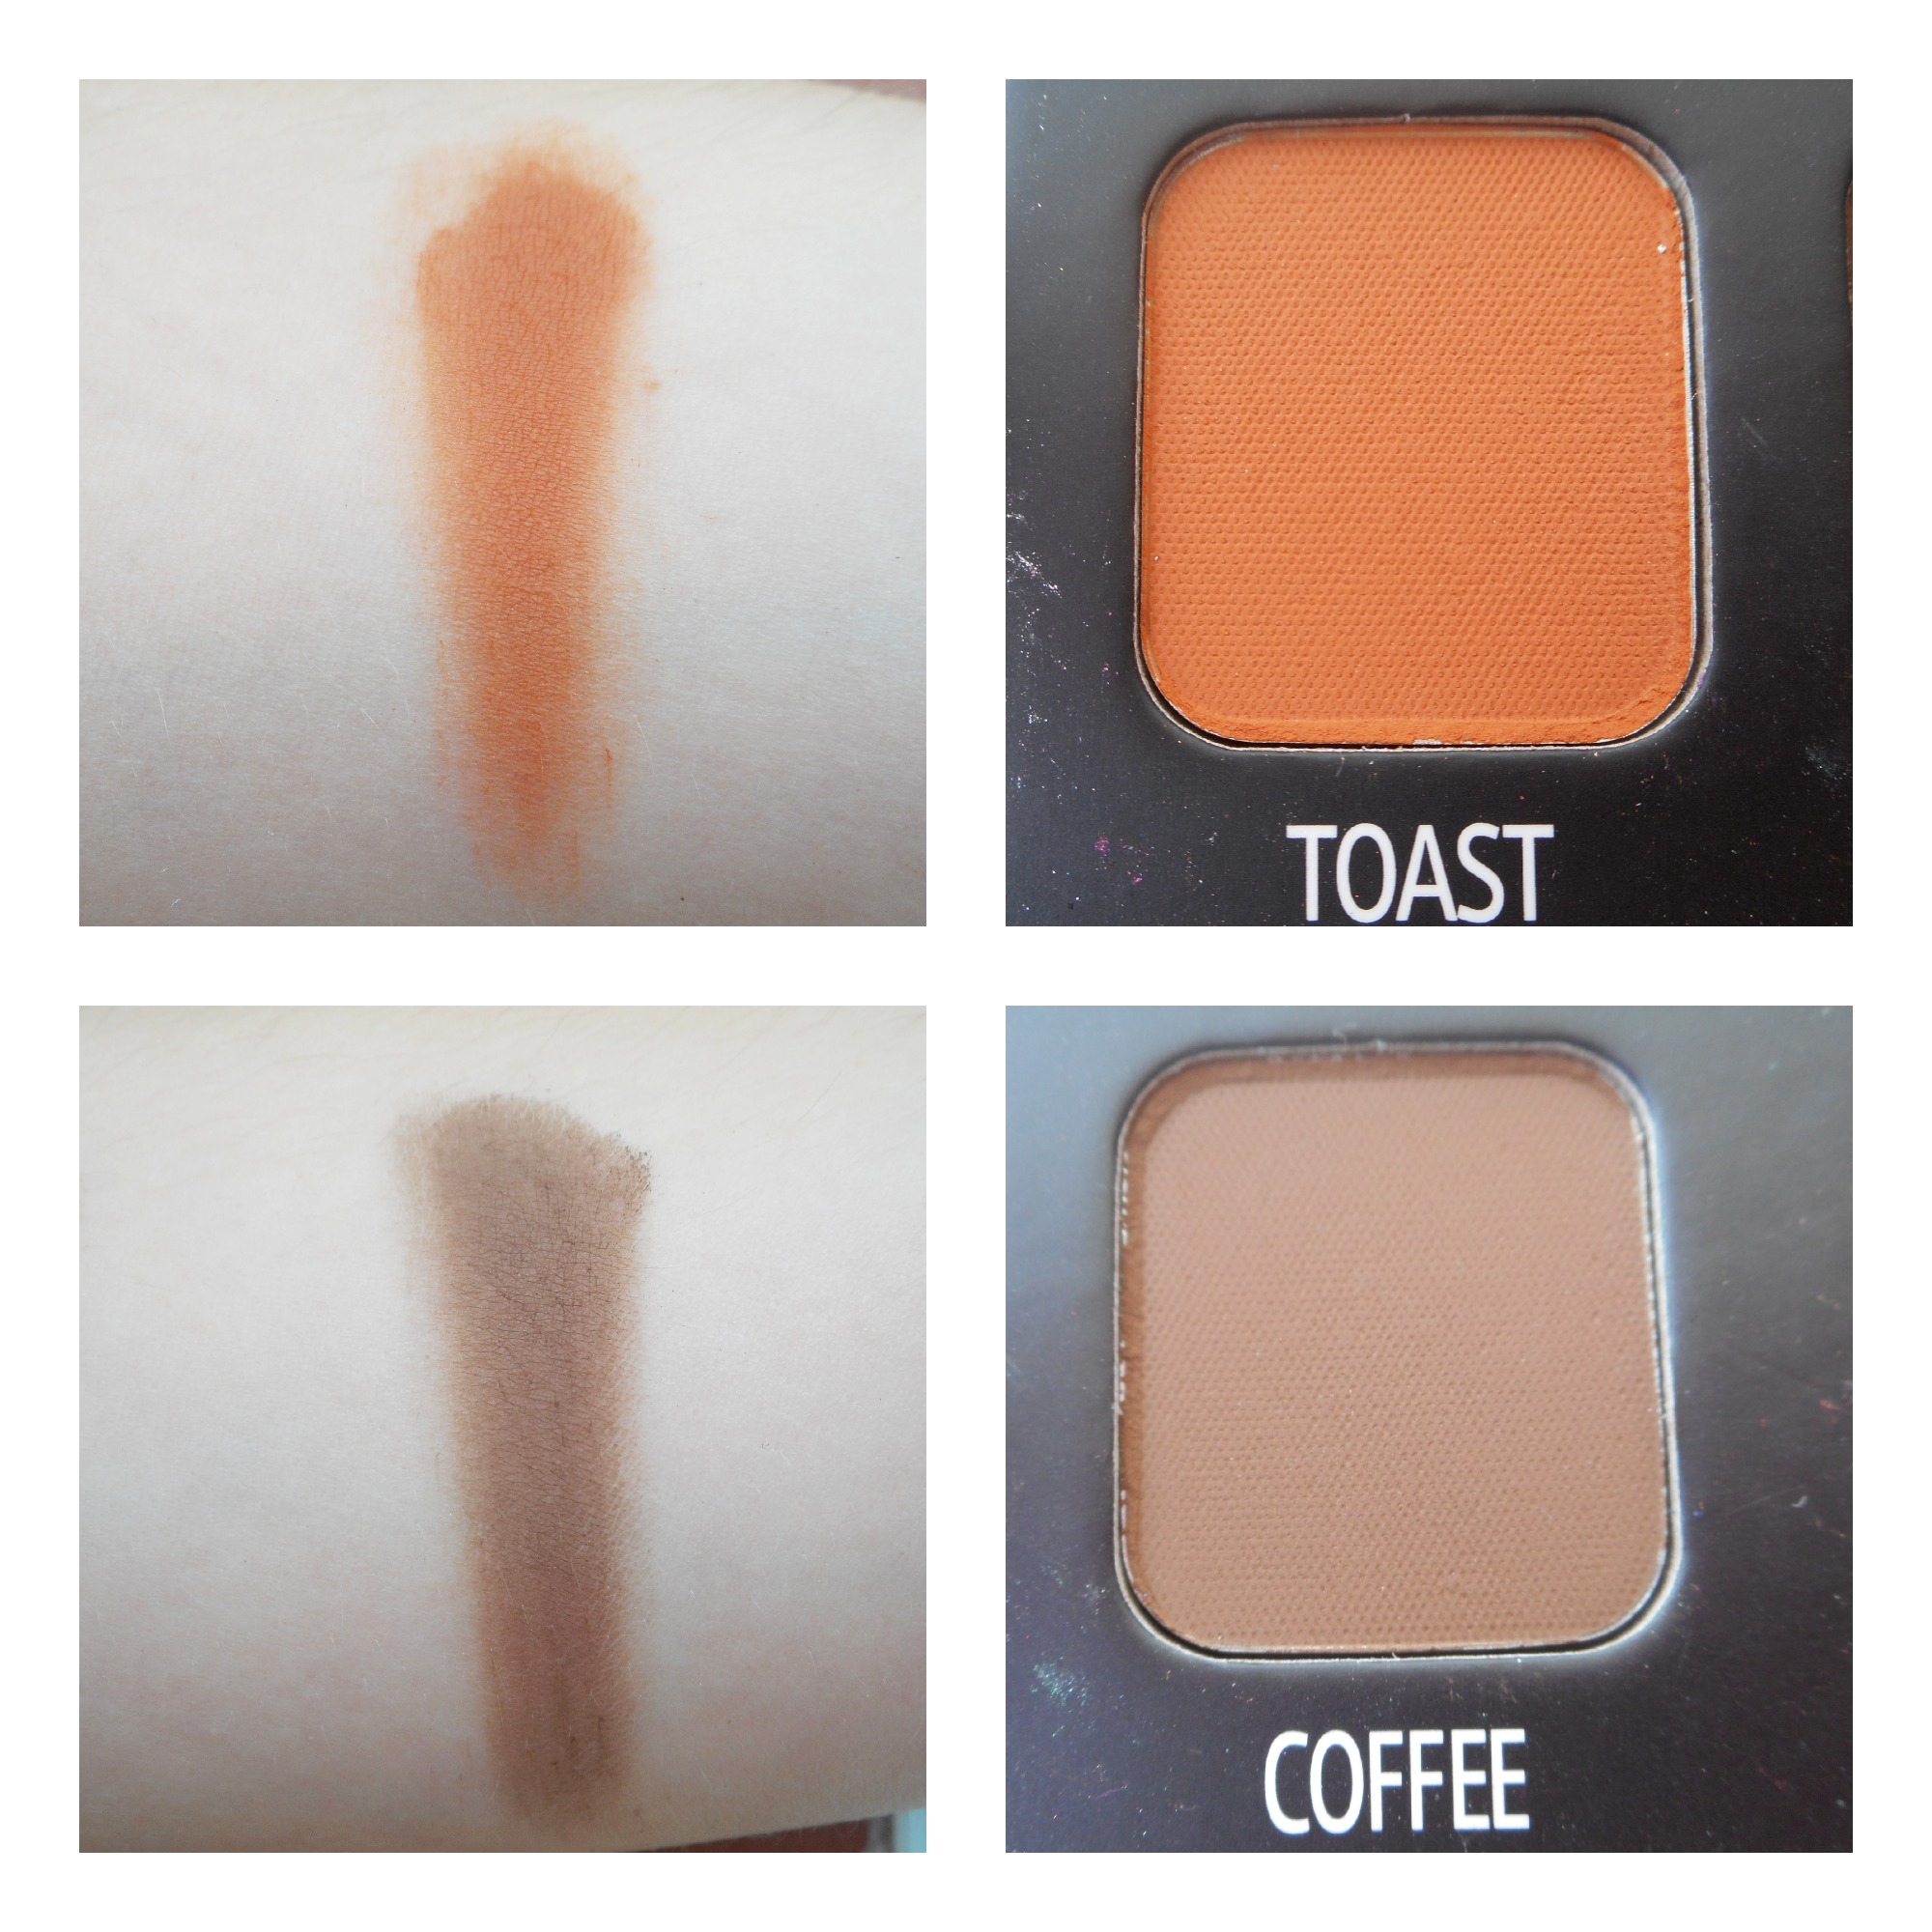 toast-coffee-swatch-different-palette-mulac